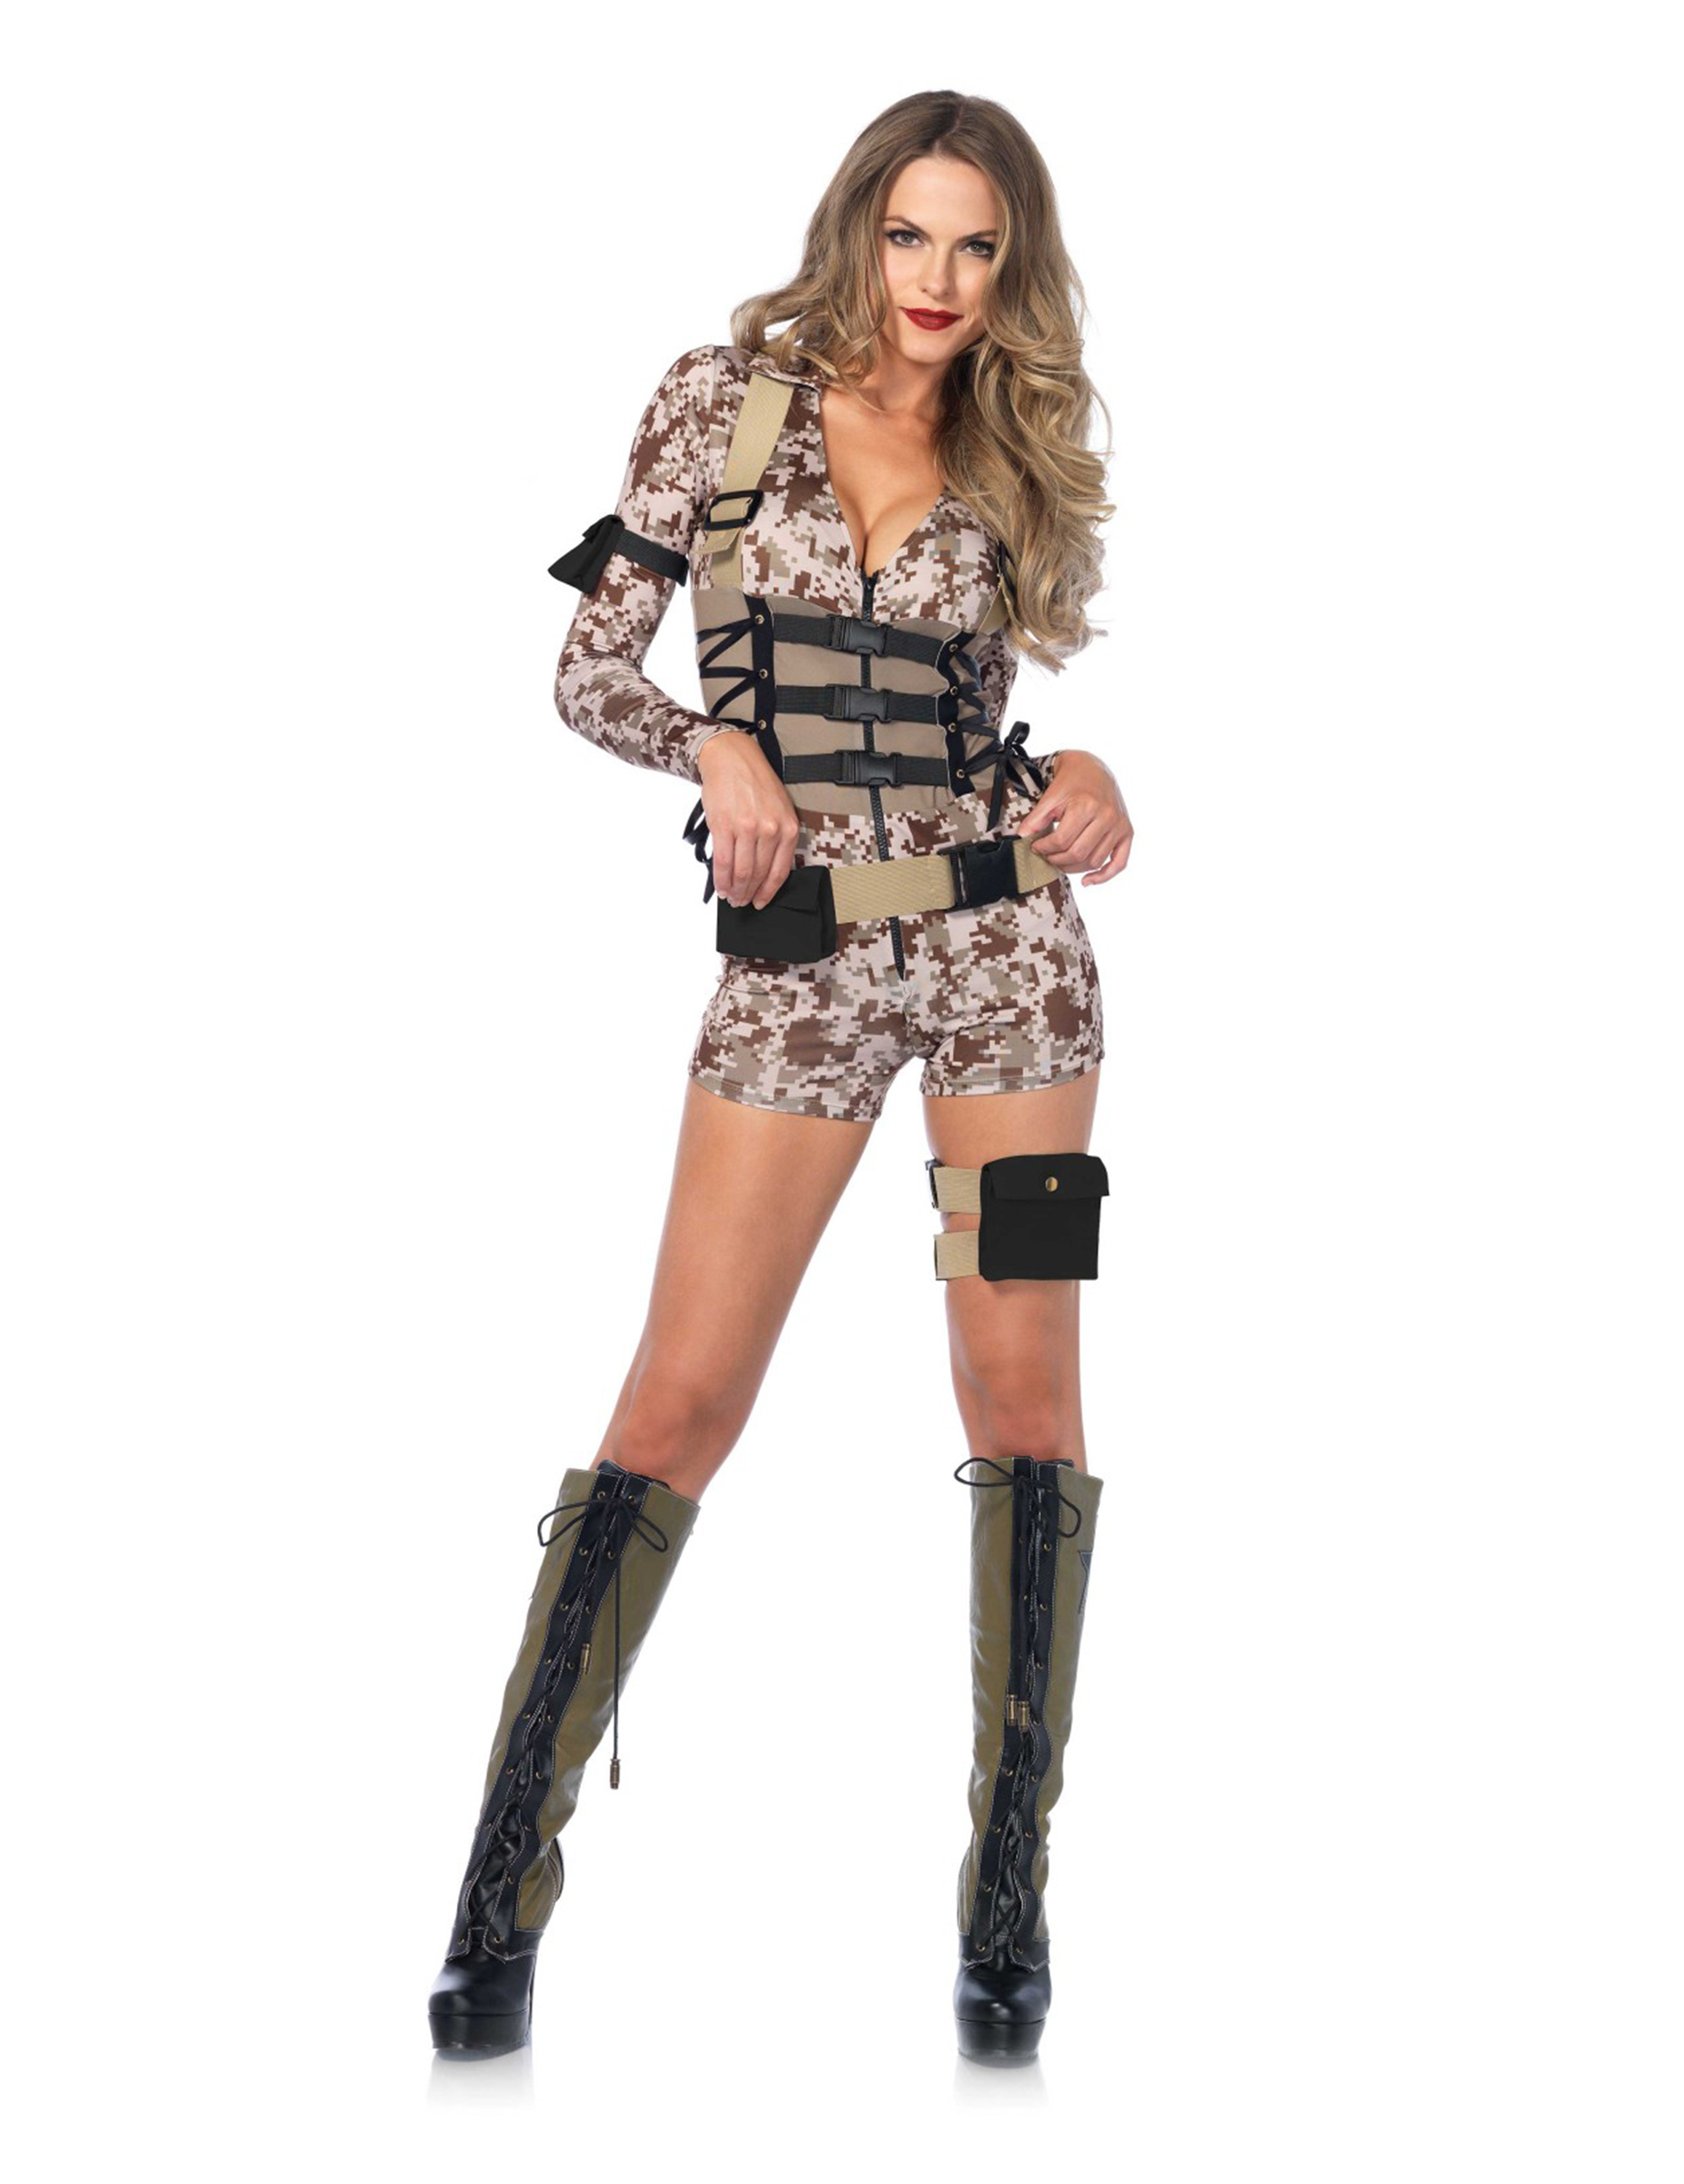 d guisement sexy militaire pixel femme achat de d guisements adultes sur vegaoopro grossiste. Black Bedroom Furniture Sets. Home Design Ideas